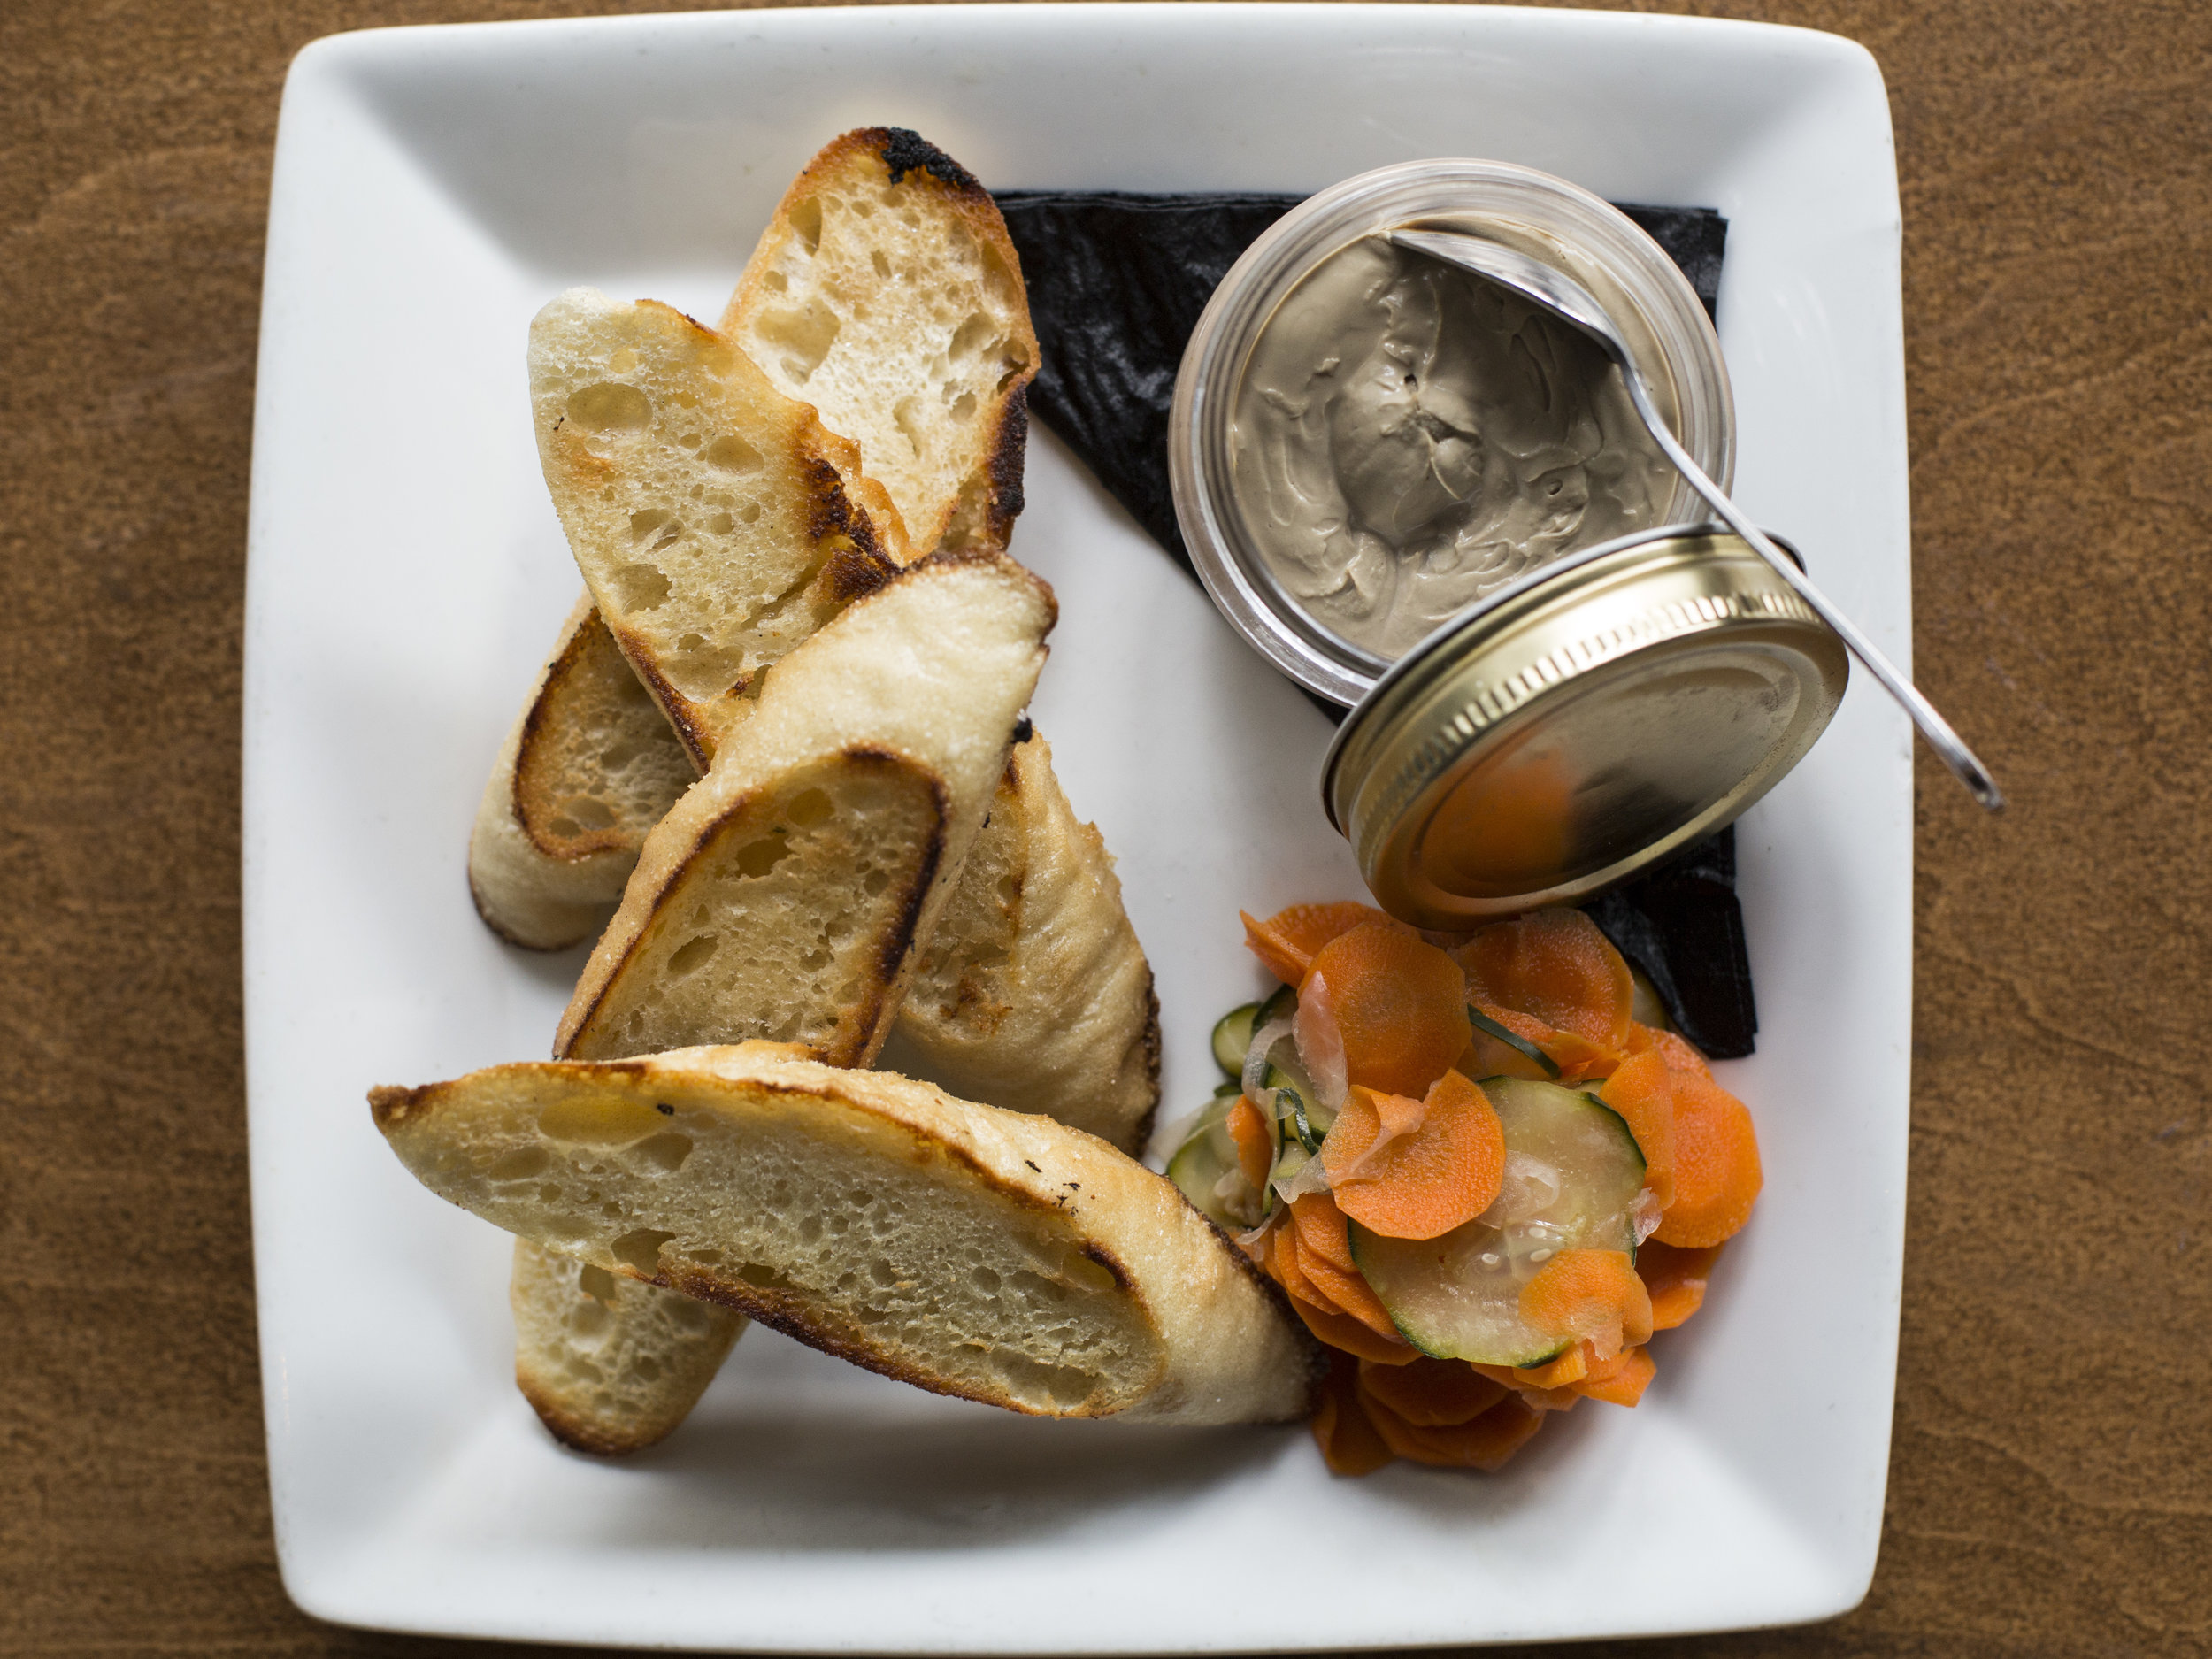 Barcito_ChickenLiverMousse02.JPG